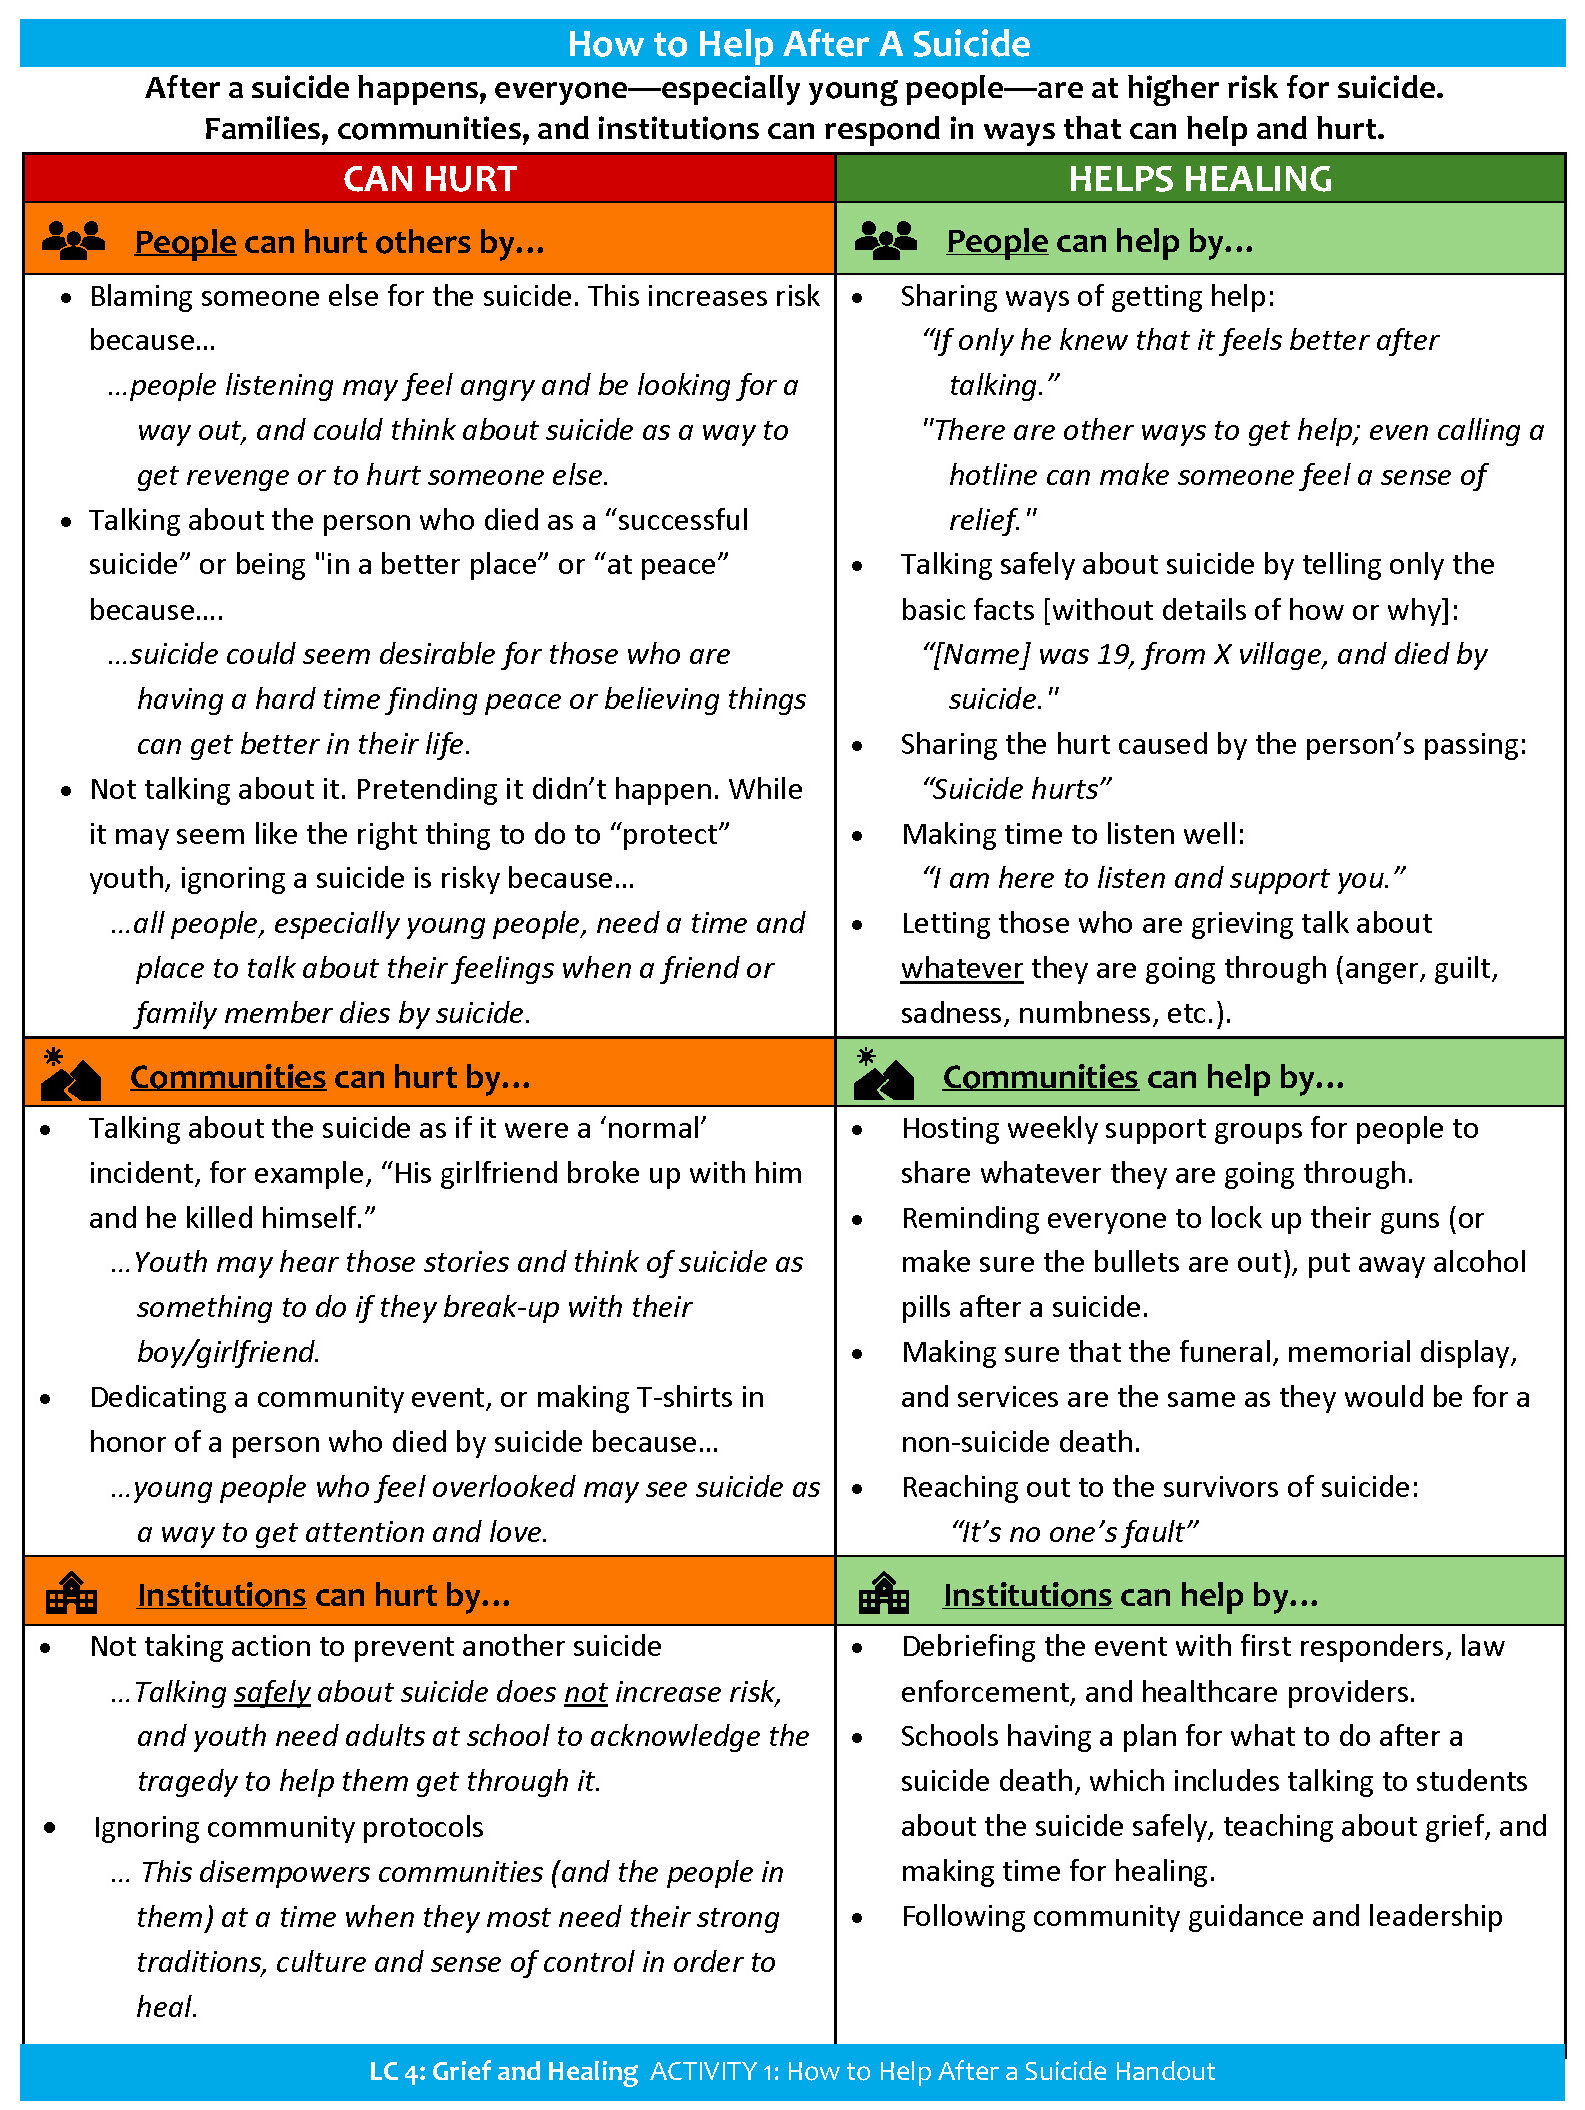 LC4 Handout-HowToHelpAfterSuicide_final_Page_1.jpg